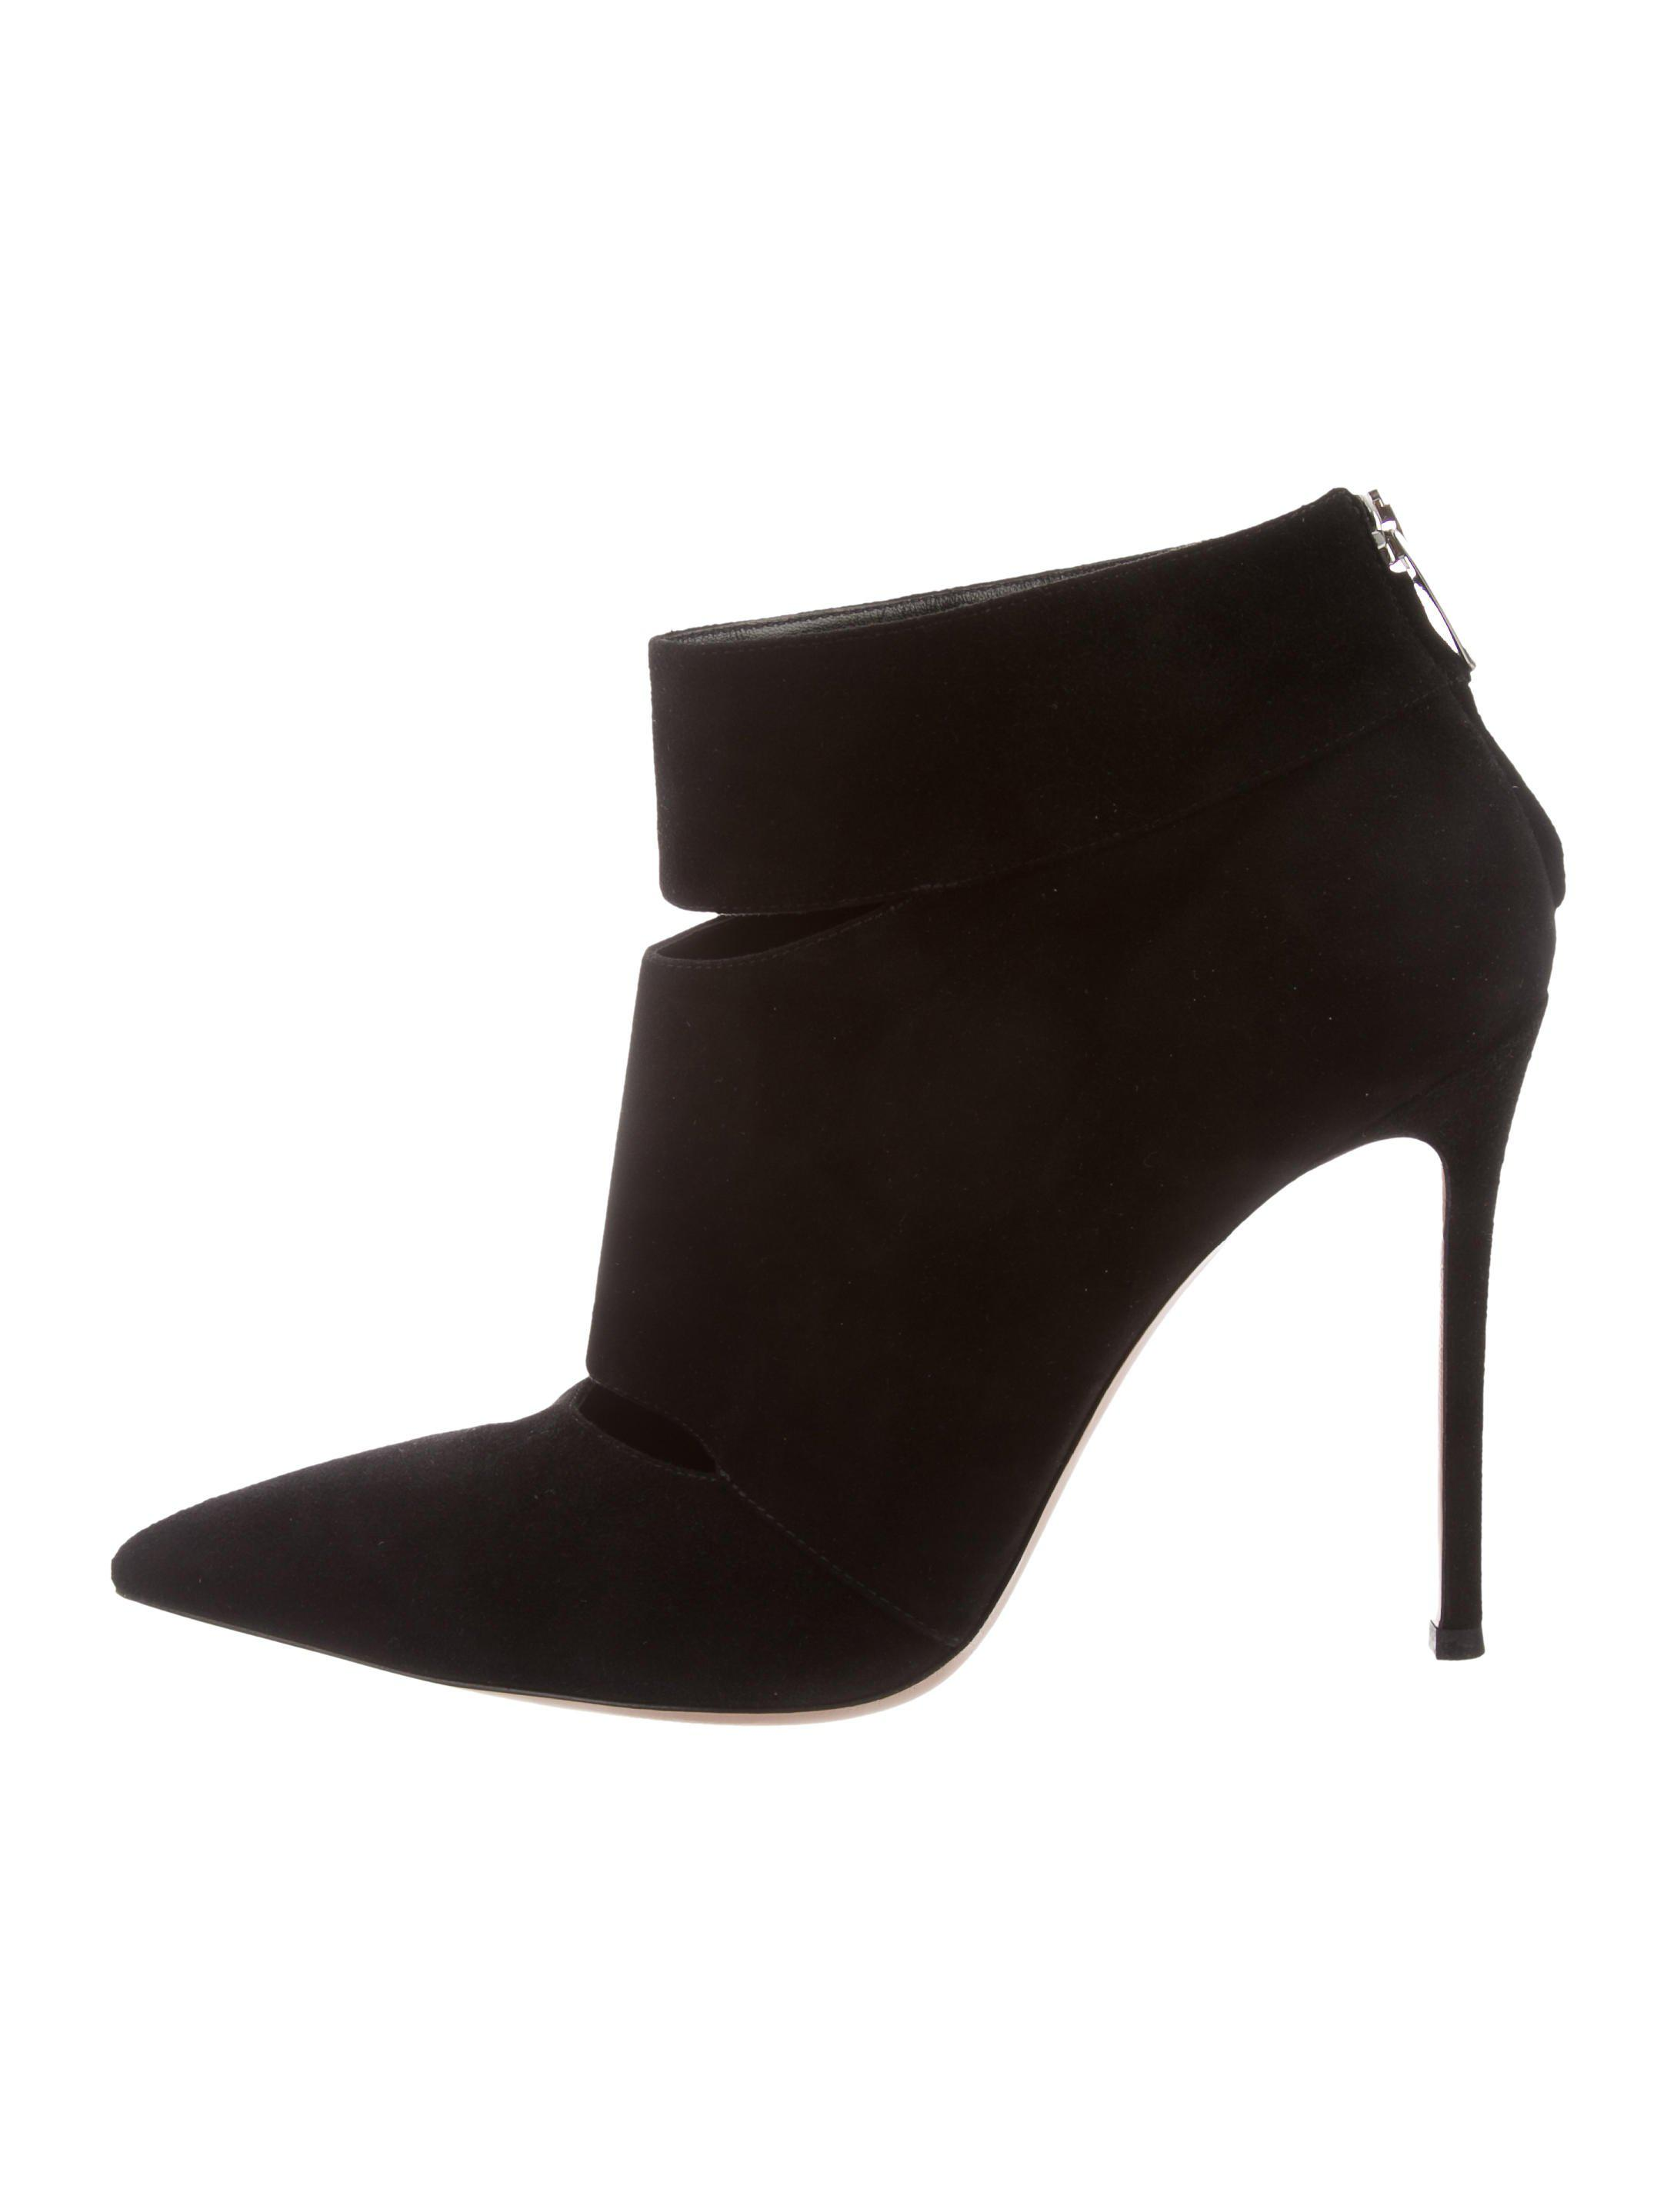 Gianvito Rossi Pointed Toe Leather Ankle Boots znpgWwgVDx